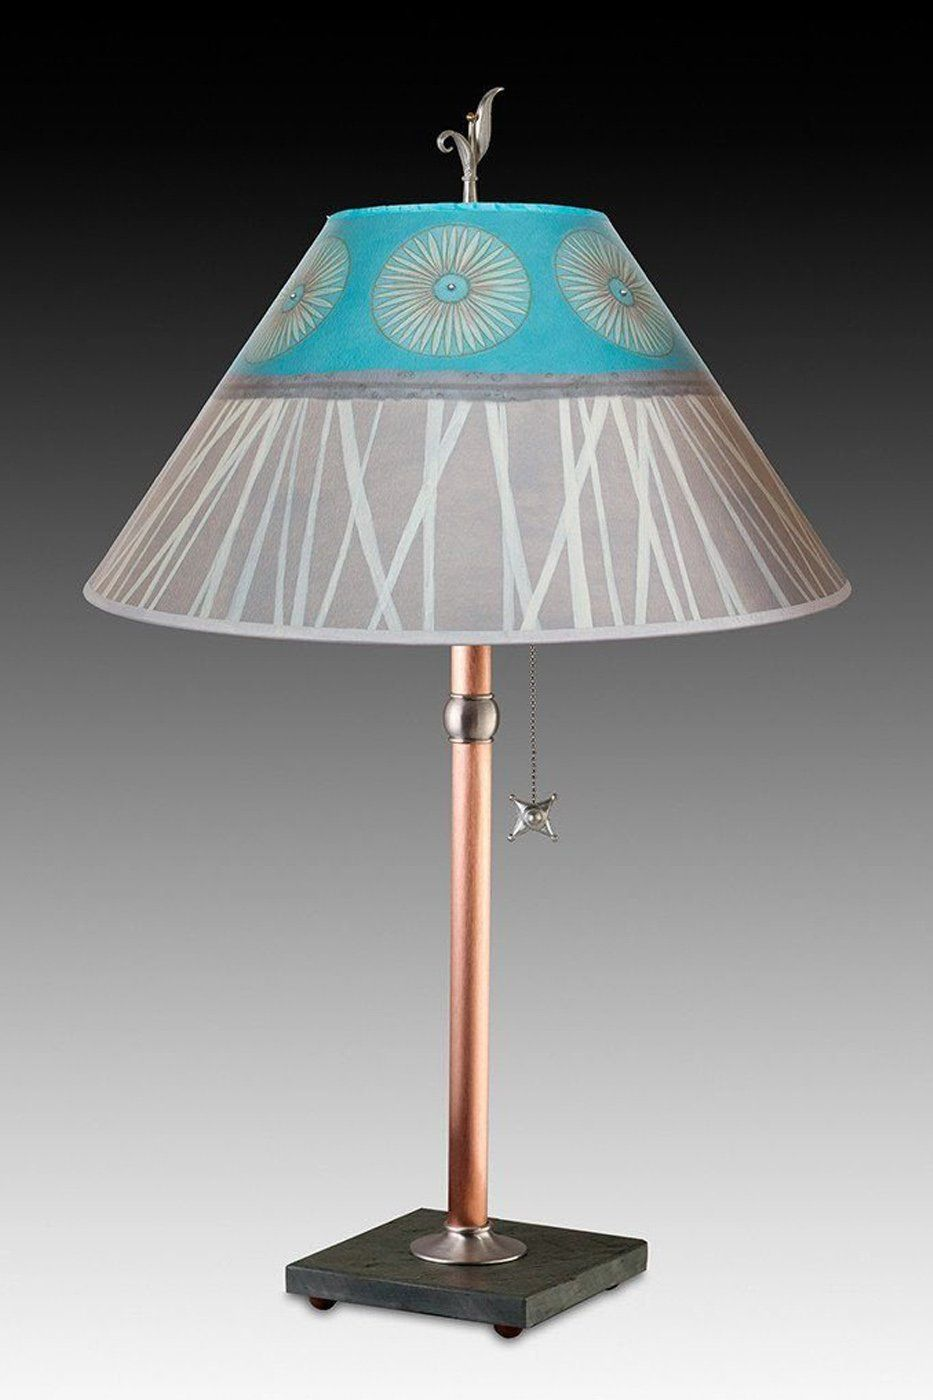 Copper Table Lamp on Vermont Slate with Large Conical Shade in Pool